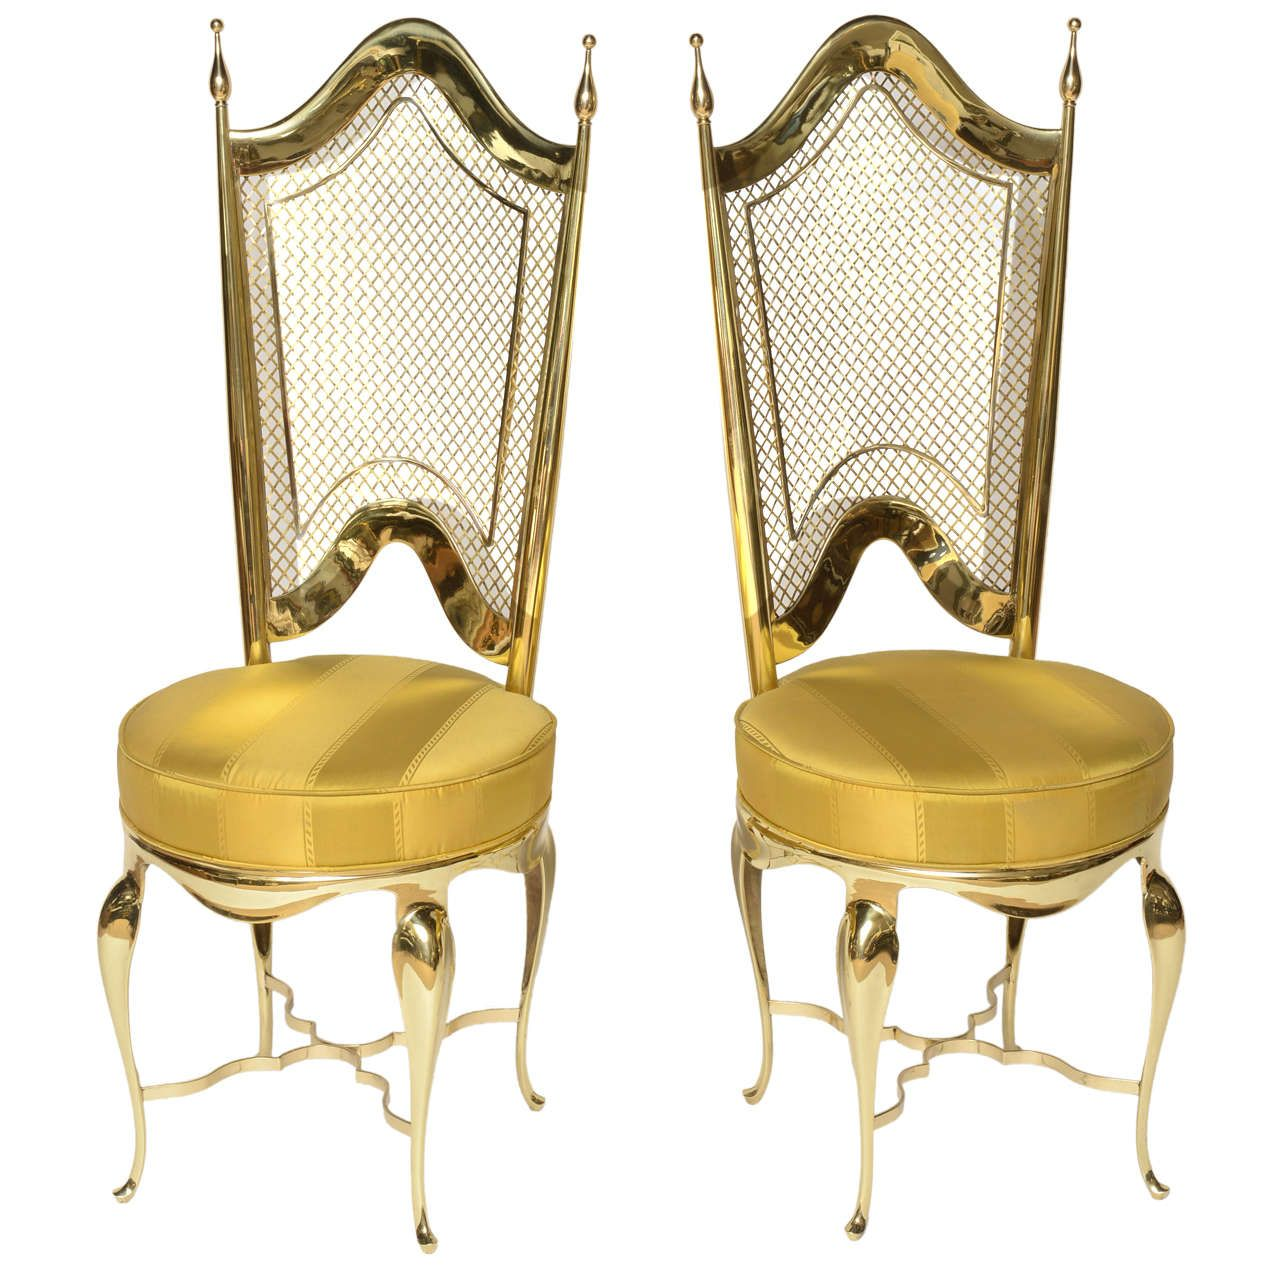 Unique Accent Chair Extremely Unique Brass Accent Chairs Decadent Decor